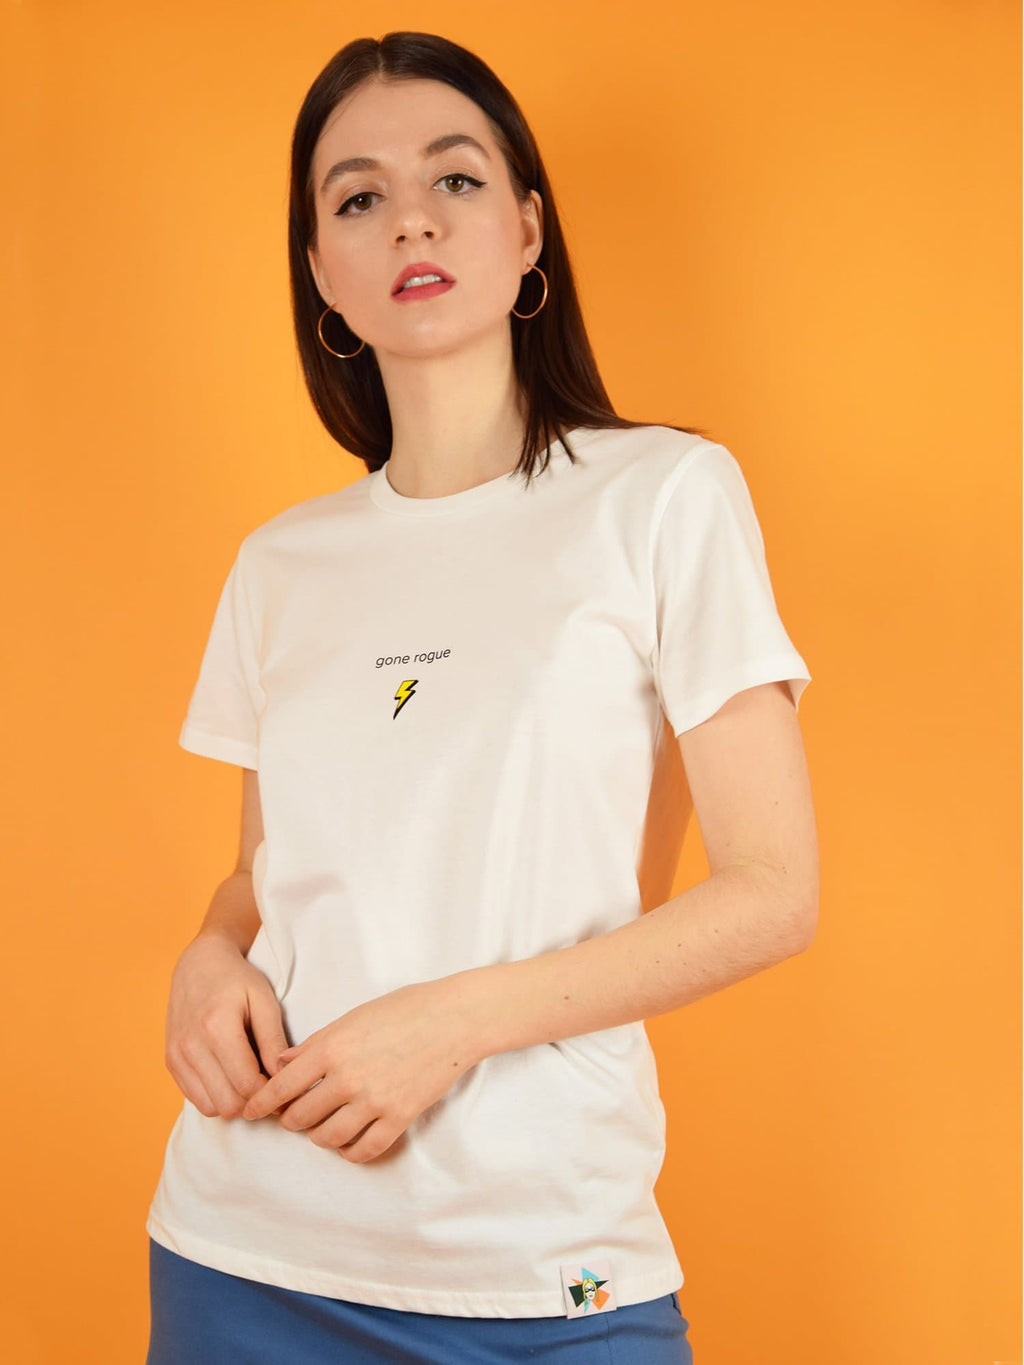 blonde gone rogue's gone rogue tee is an organic cotton t-shirt with soft touch. it features cool branded print with a lighting on the chest.